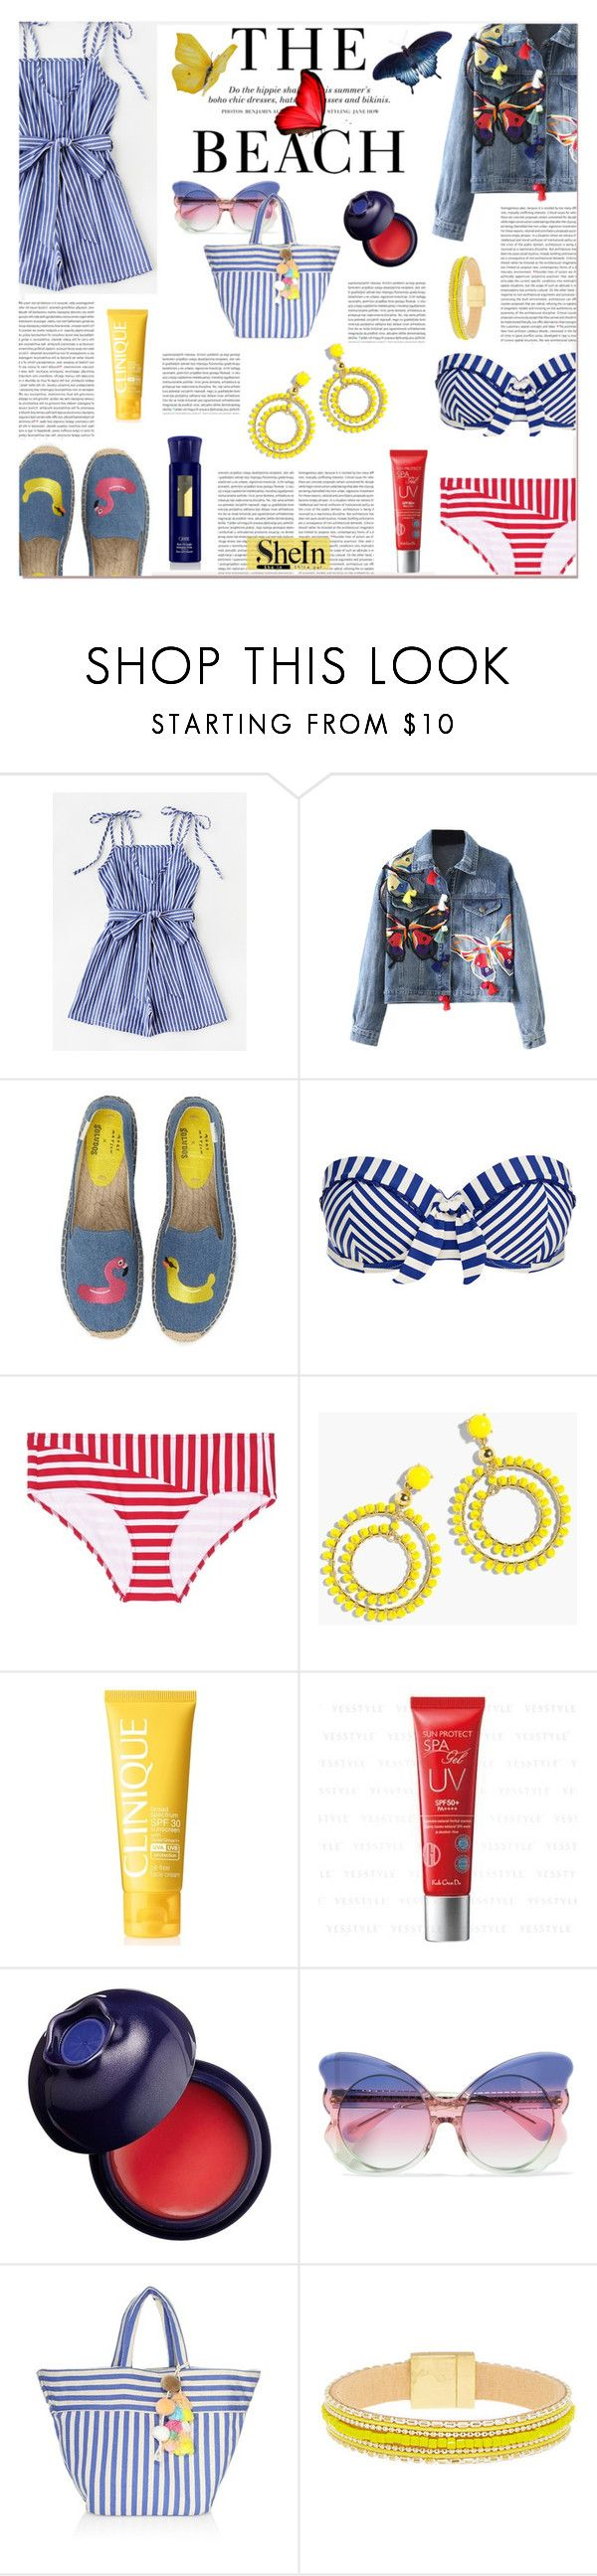 """WIN SHEIN $30 COUPON"" by ztugceuslu ❤ liked on Polyvore featuring WithChic, Soludos, Paolita, Araks, H&M, J.Crew, Clinique, Koh Gen Do, Charlotte Russe and Matthew Williamson"